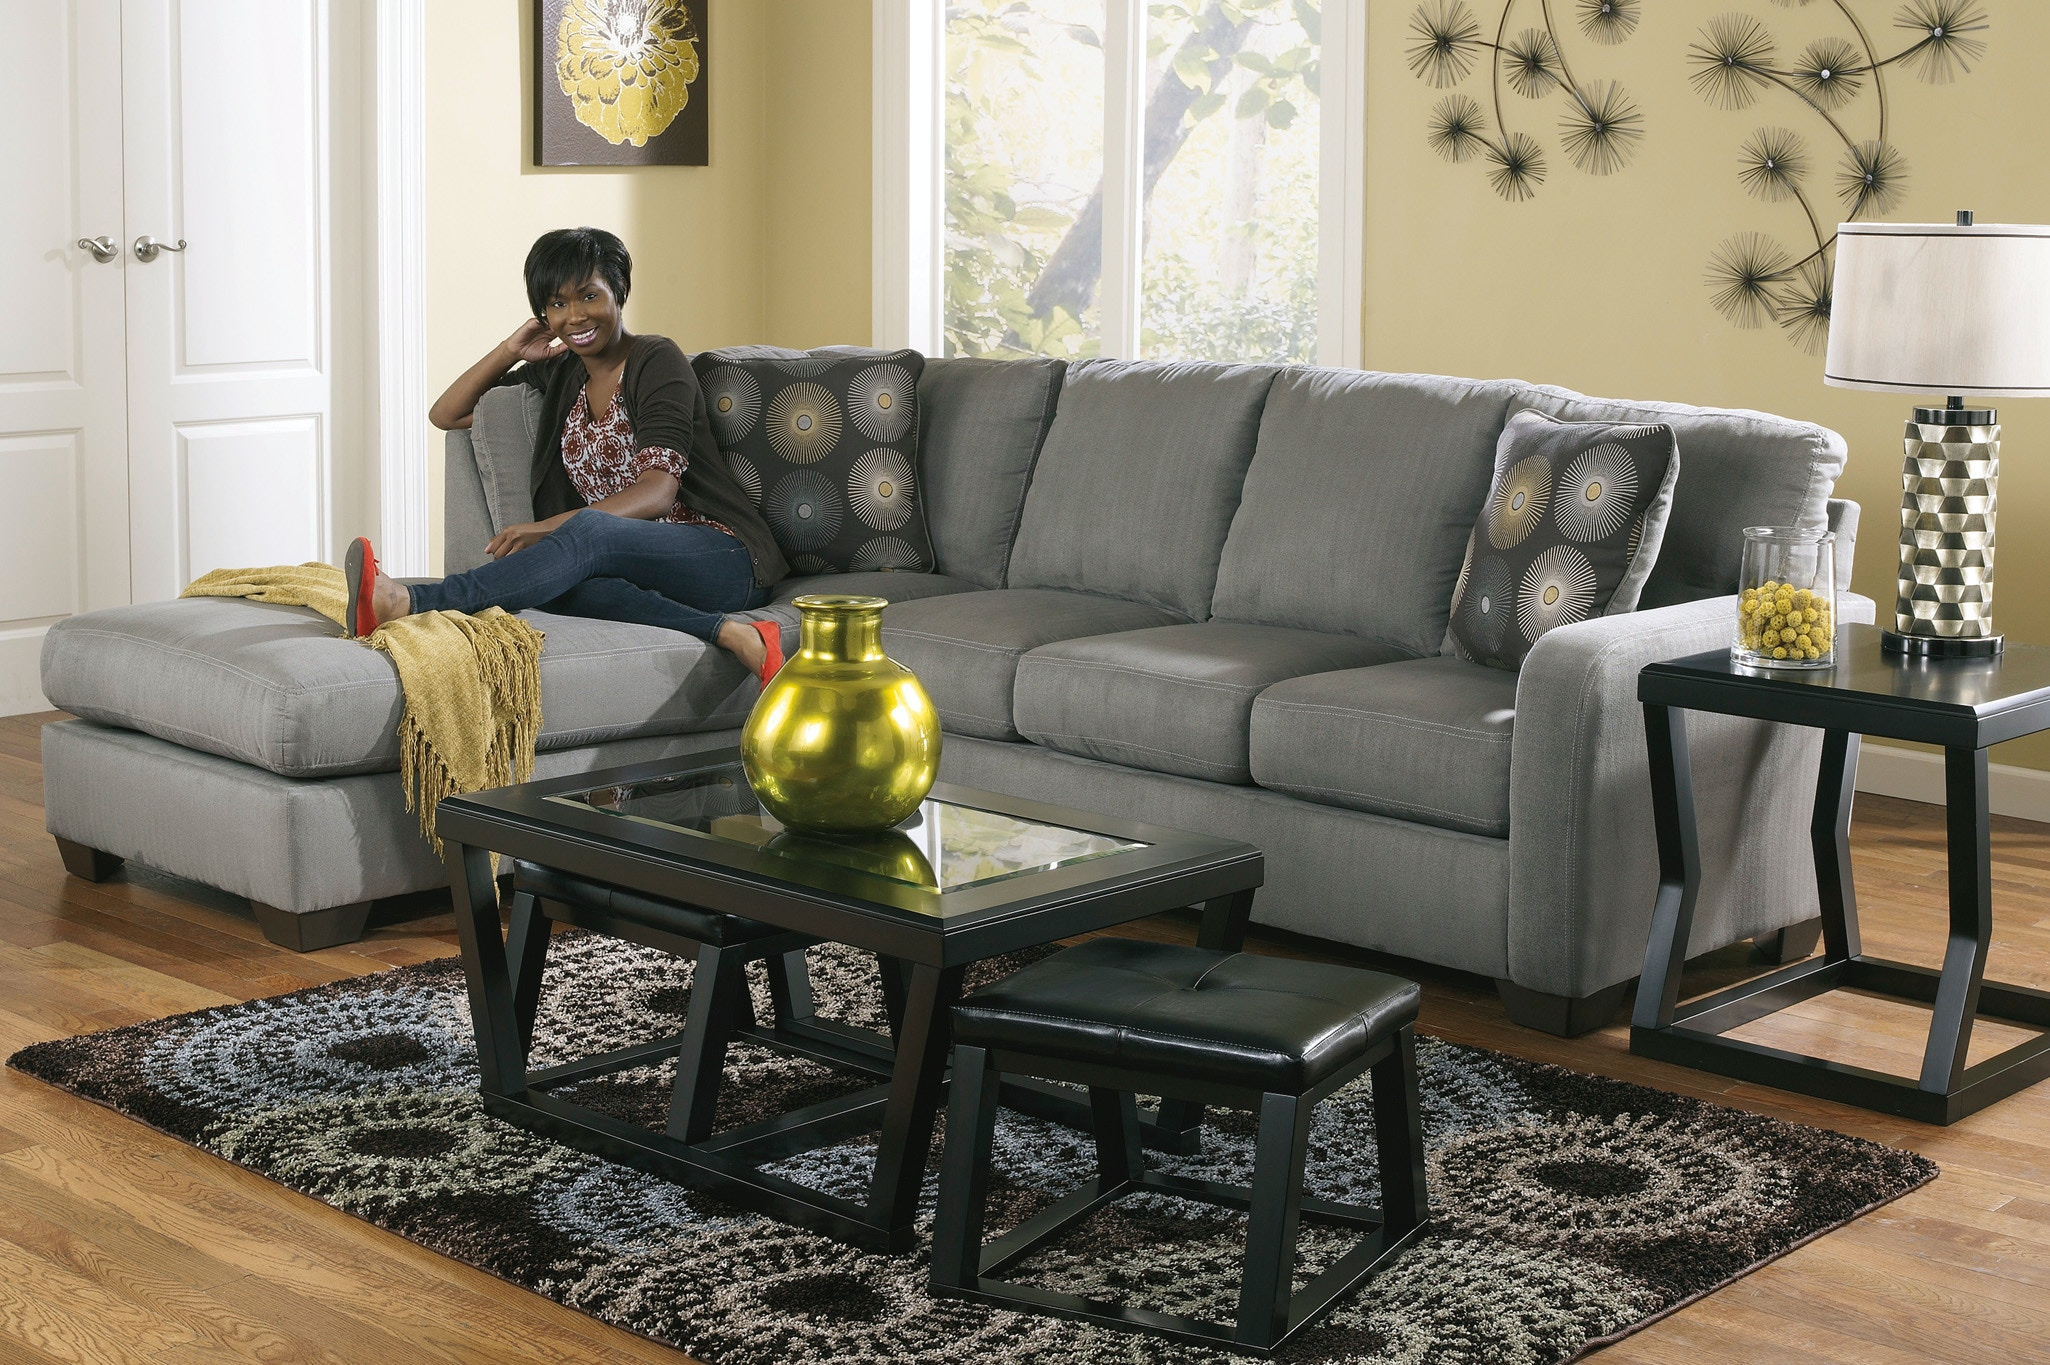 Superior Signature Design By Ashley Zella Charcoal Left Chaise Sectional 582225